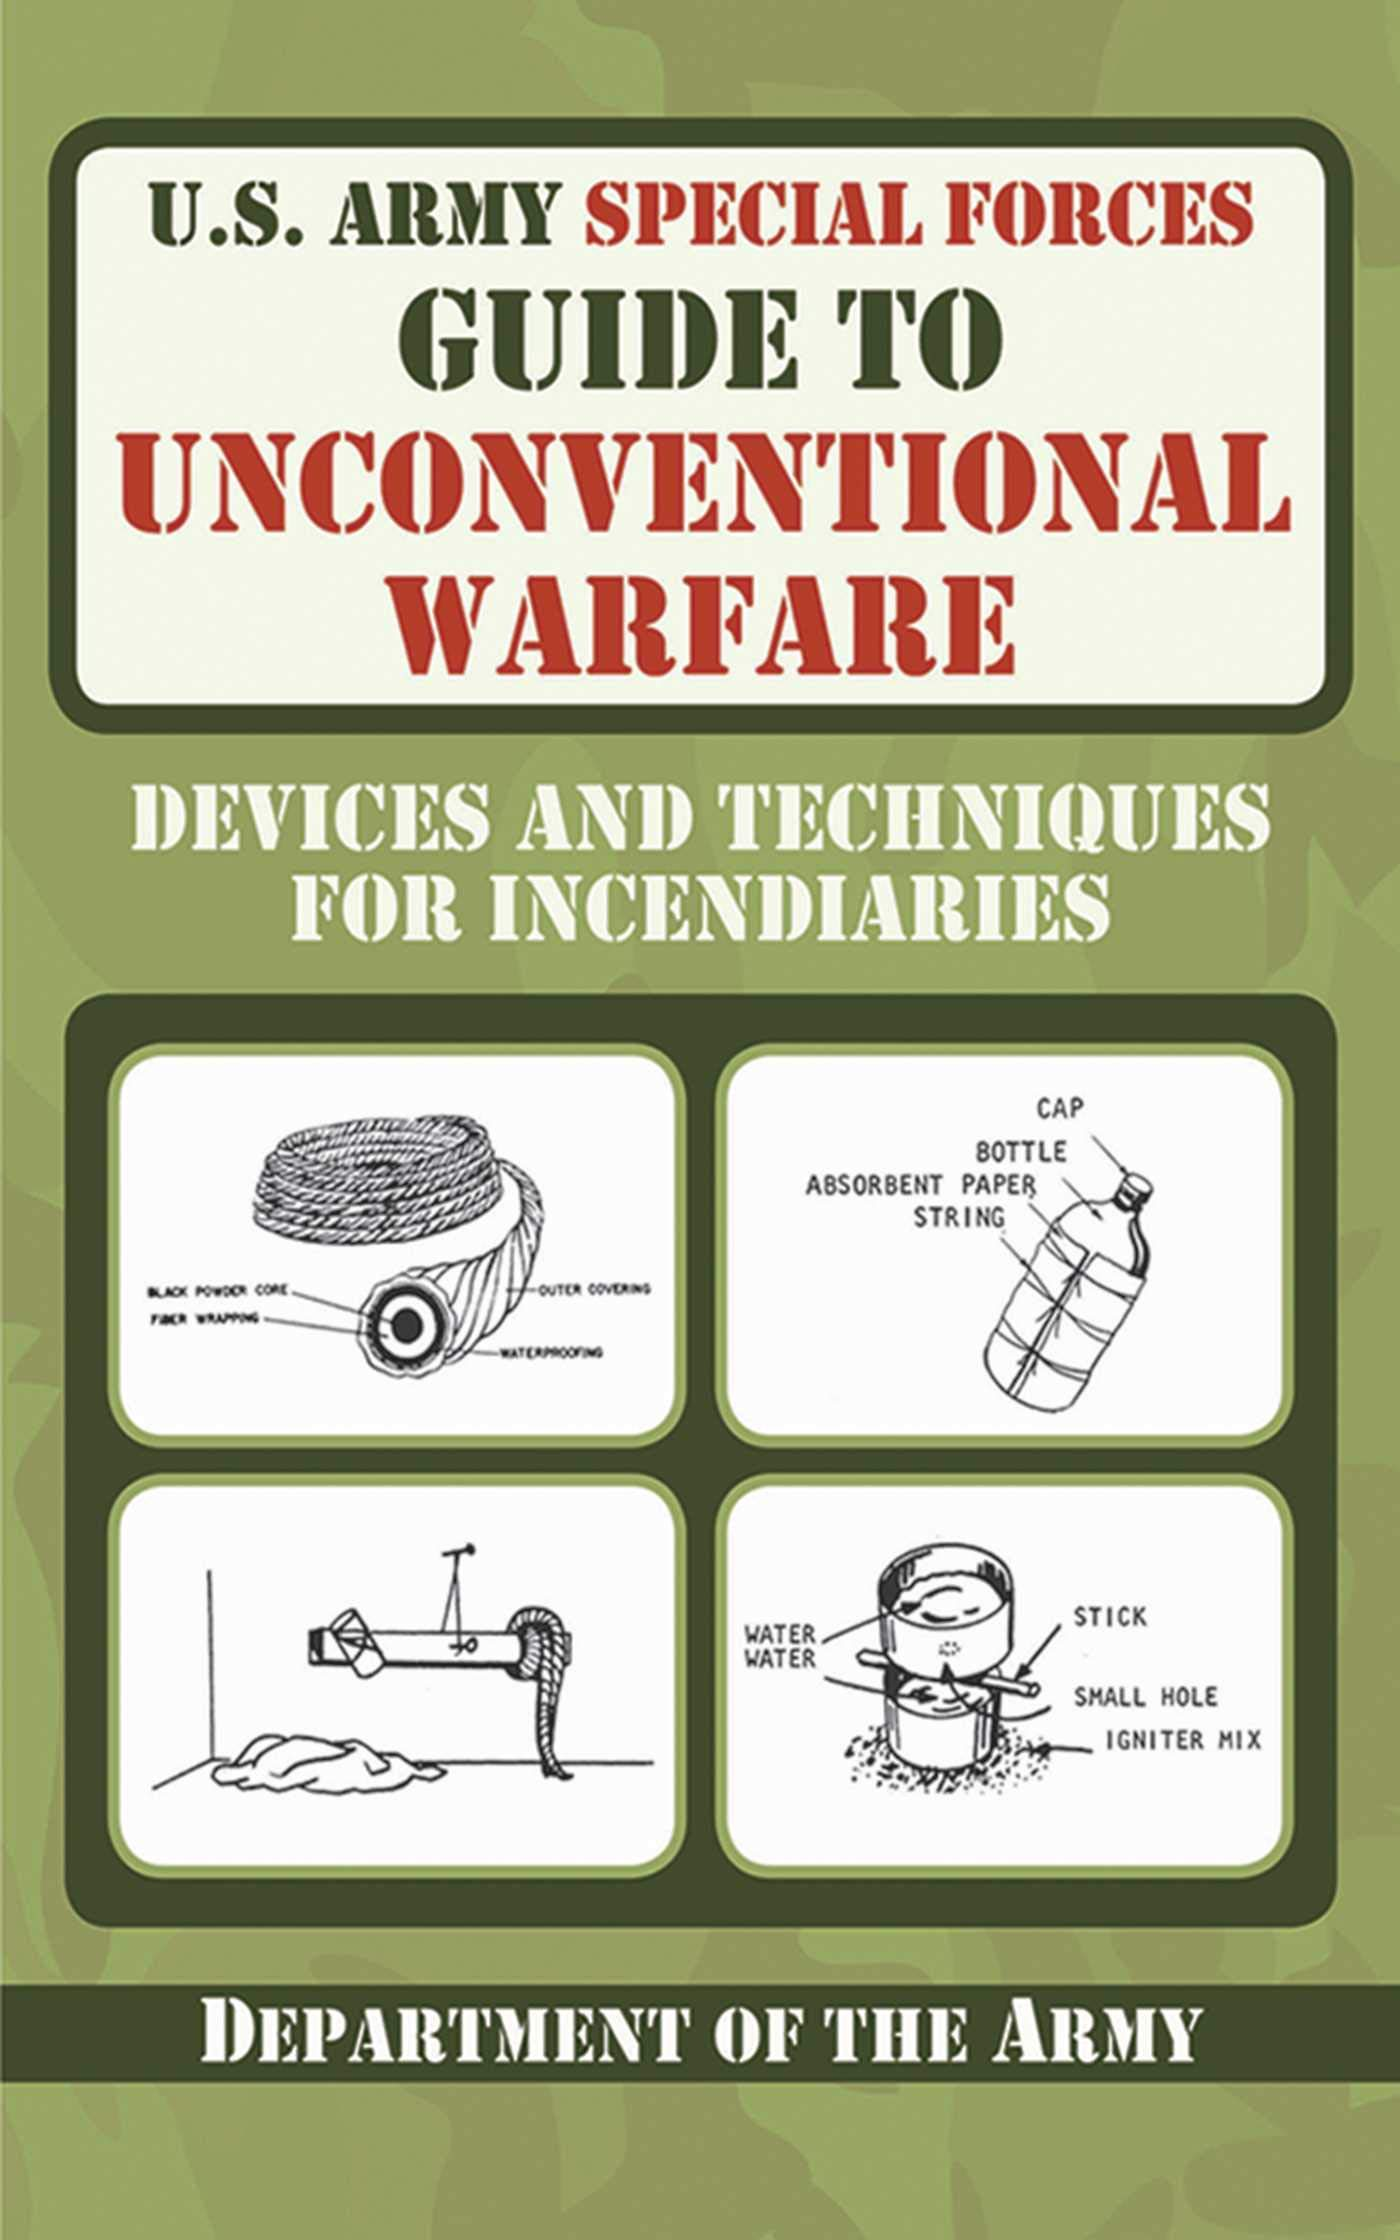 U.S. Army Special Forces Guide To Unconventional Warfare  Devices And Techniques For Incendiaries